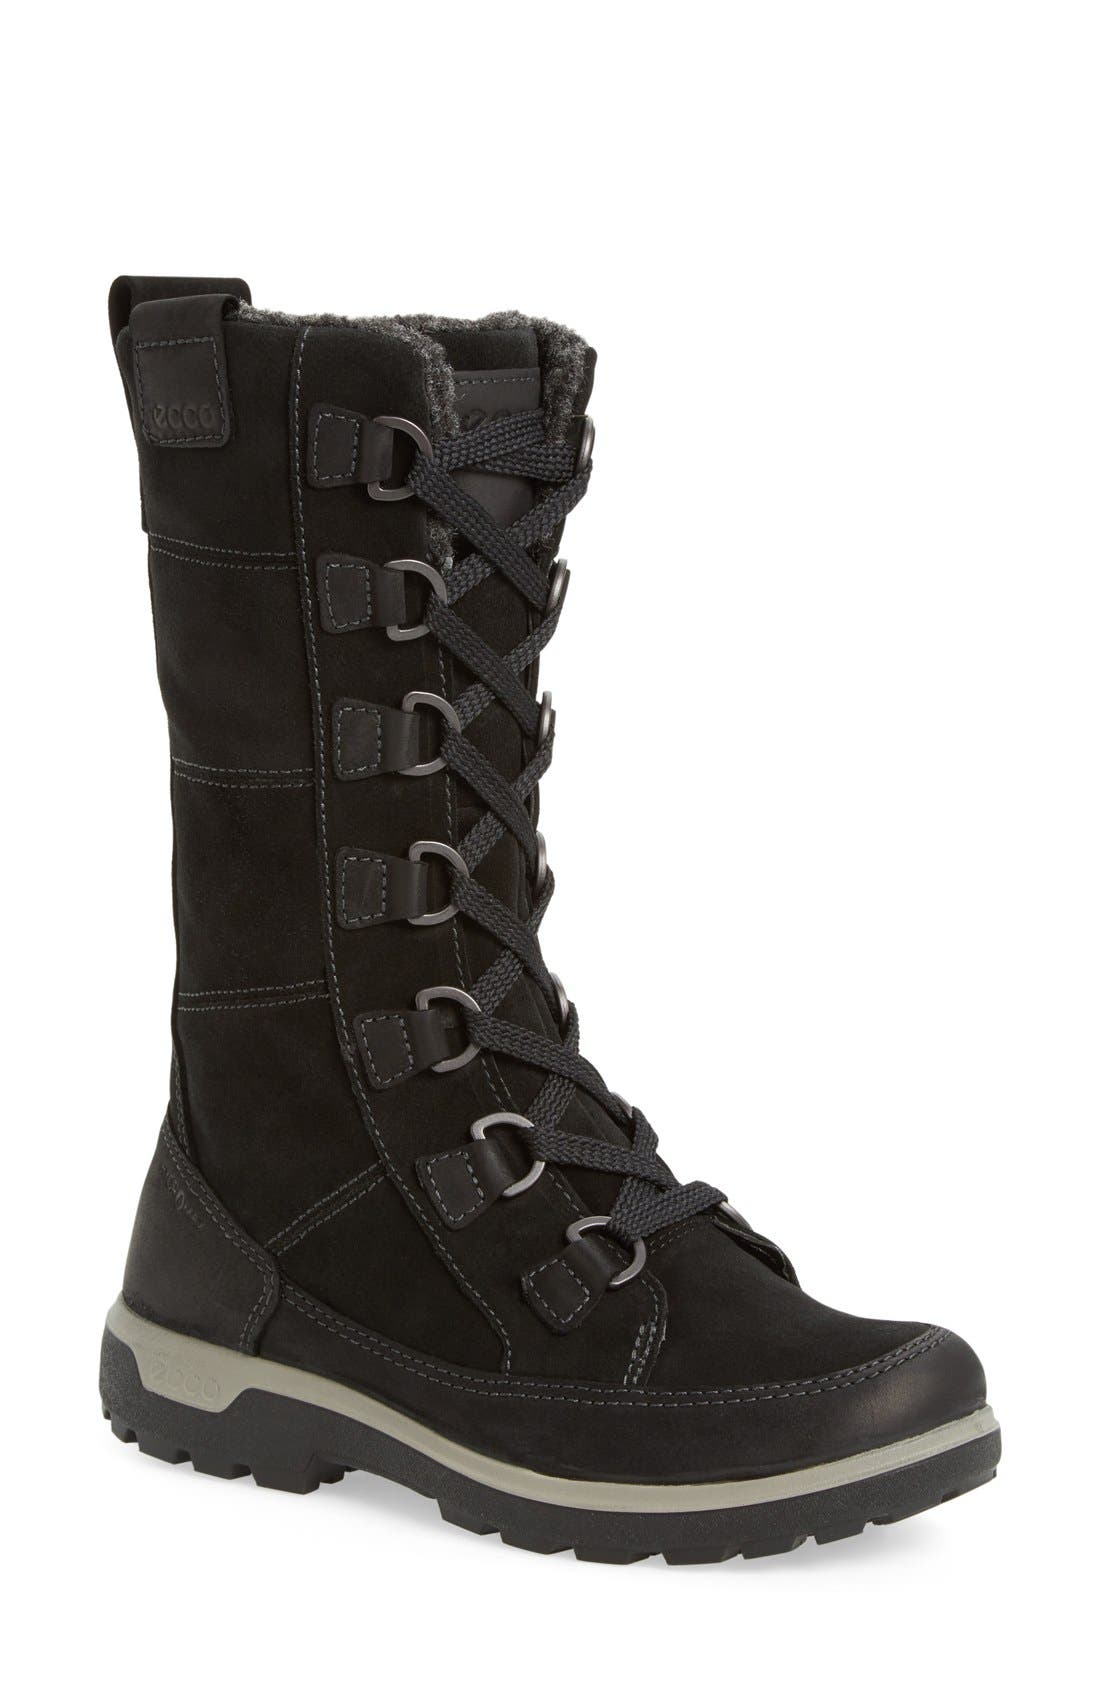 'Gora' Gore-Tex<sup>®</sup> Waterproof Lace-Up Boot,                         Main,                         color, Black Oiled Nubuck Leather